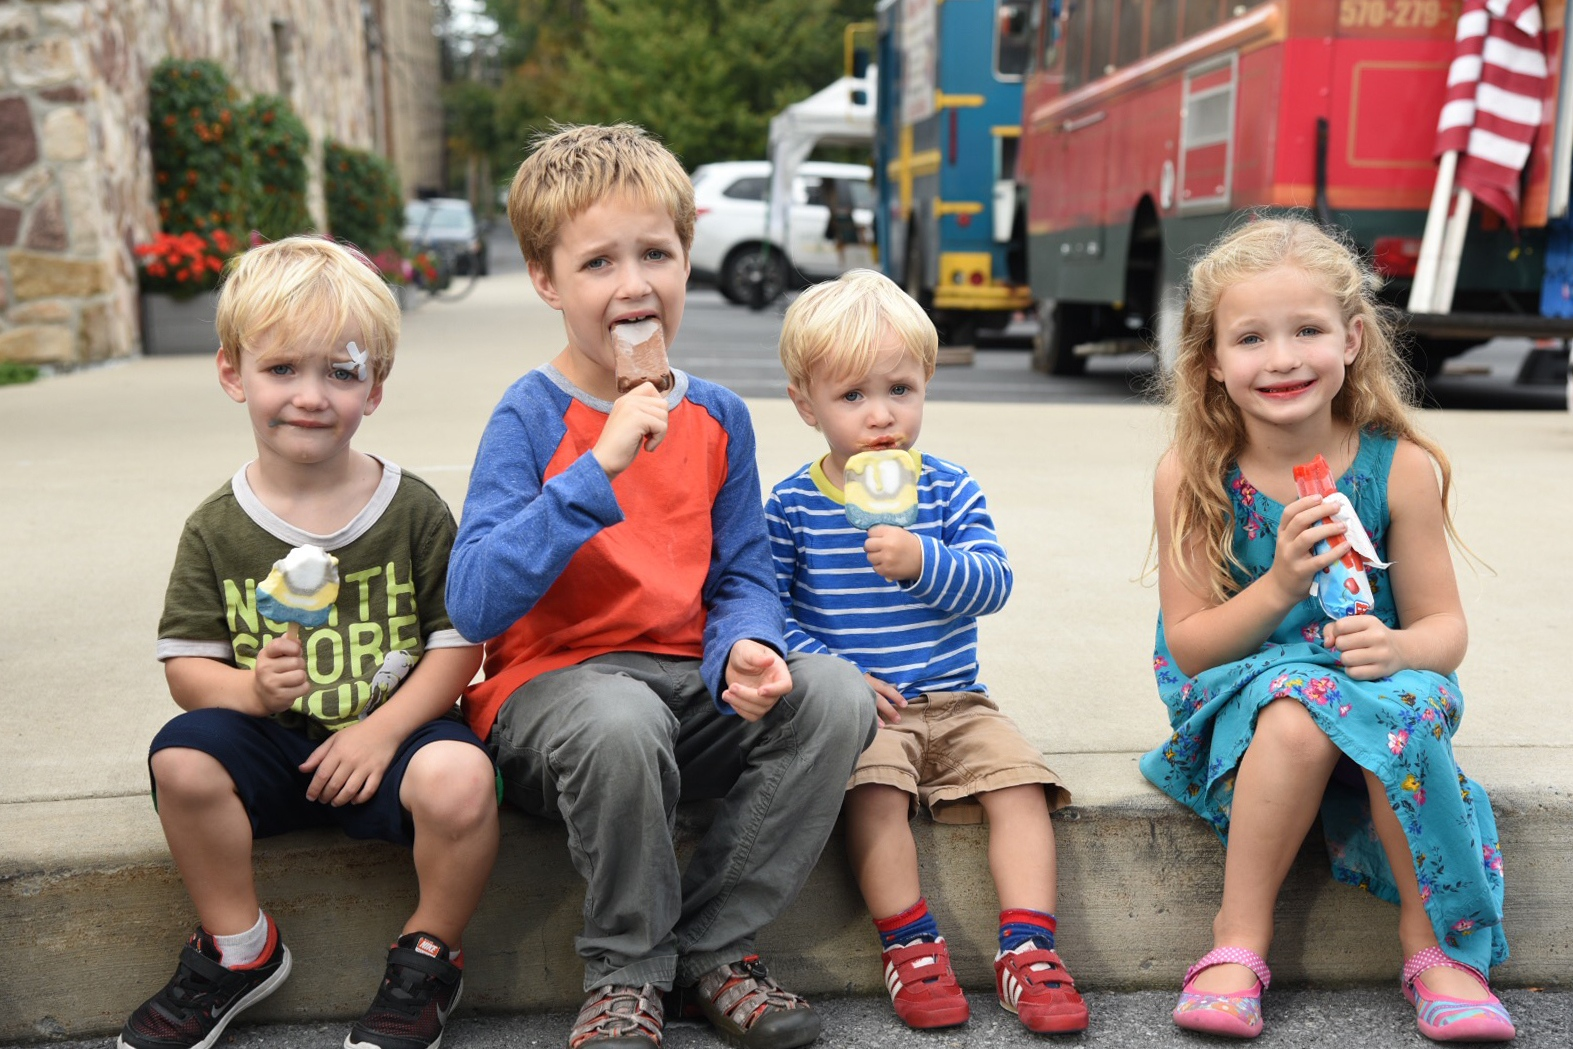 Four children sit together eating ice creams at a local food truck festival in State College, PA, on Sep 15, 2017.